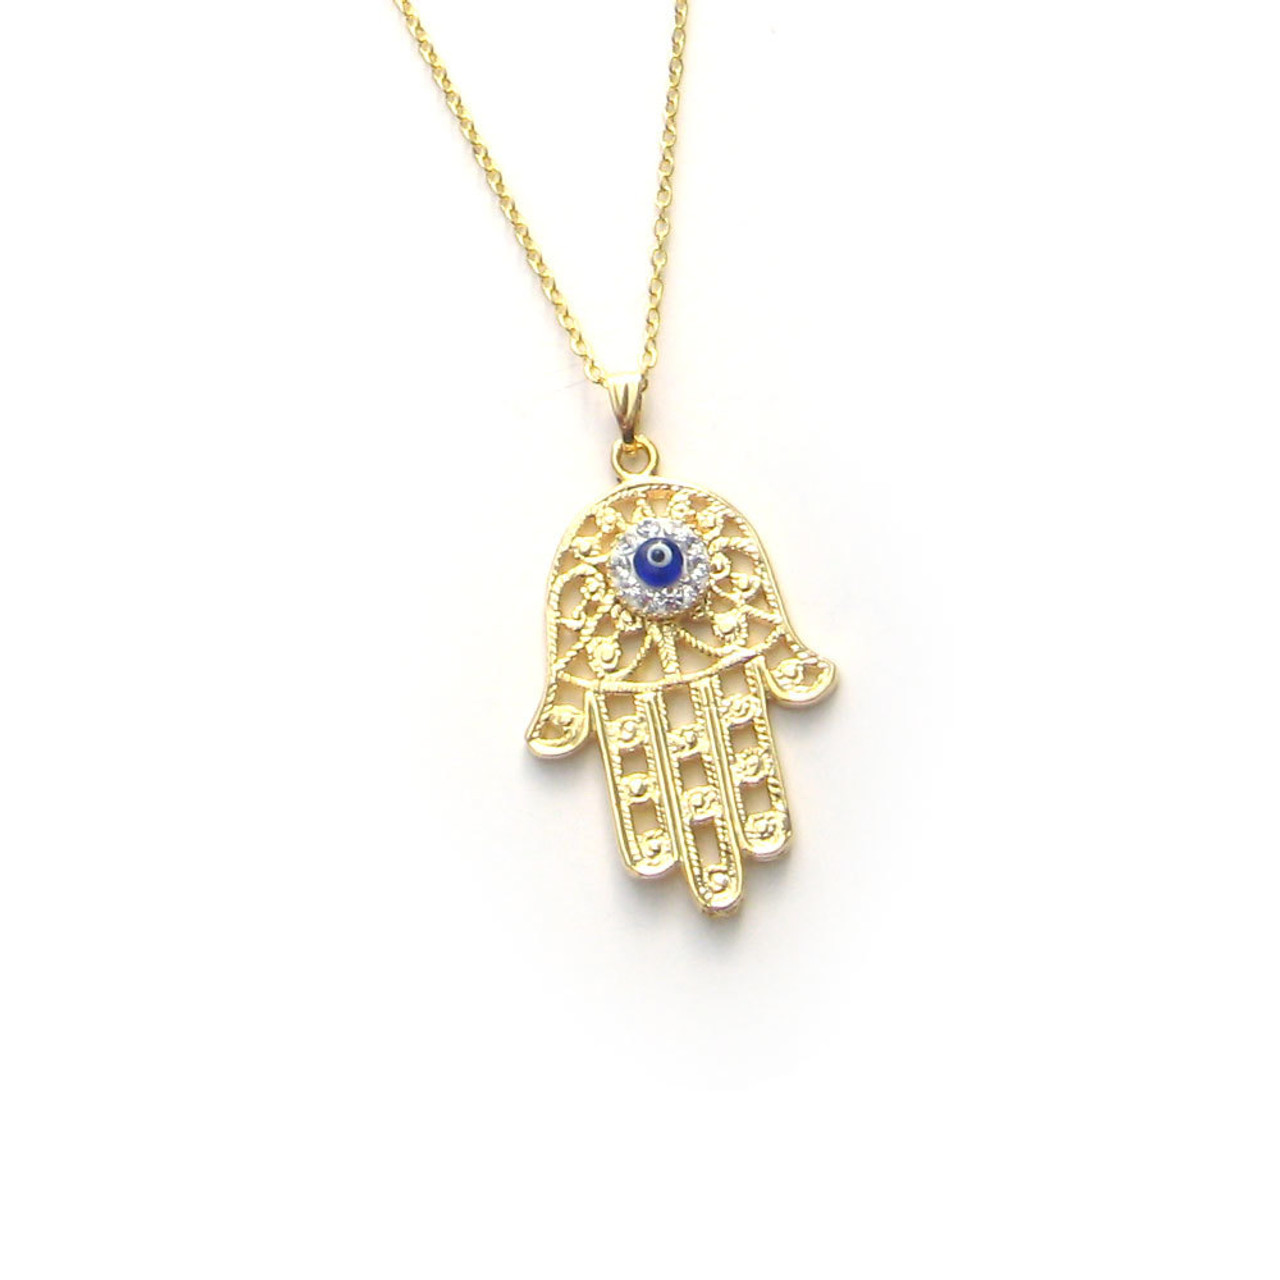 6d83461e51c1c Evil Eye Gold-Plated Necklace - Ornate Crystal Hamsa Hand by Paykoc EE4135